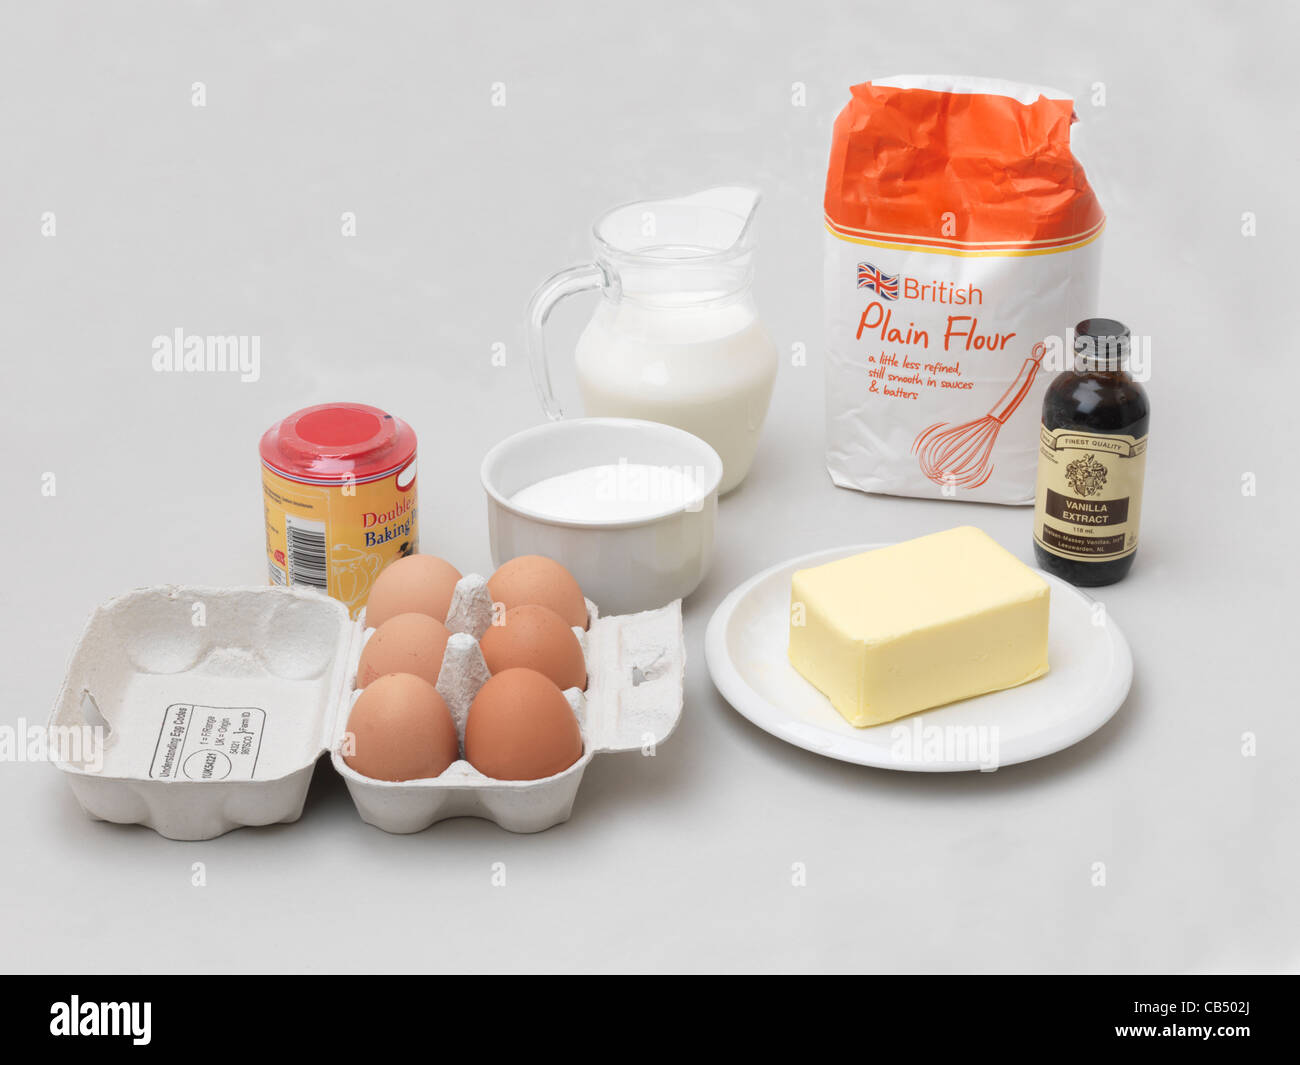 What can i make with plain flour eggs and butter